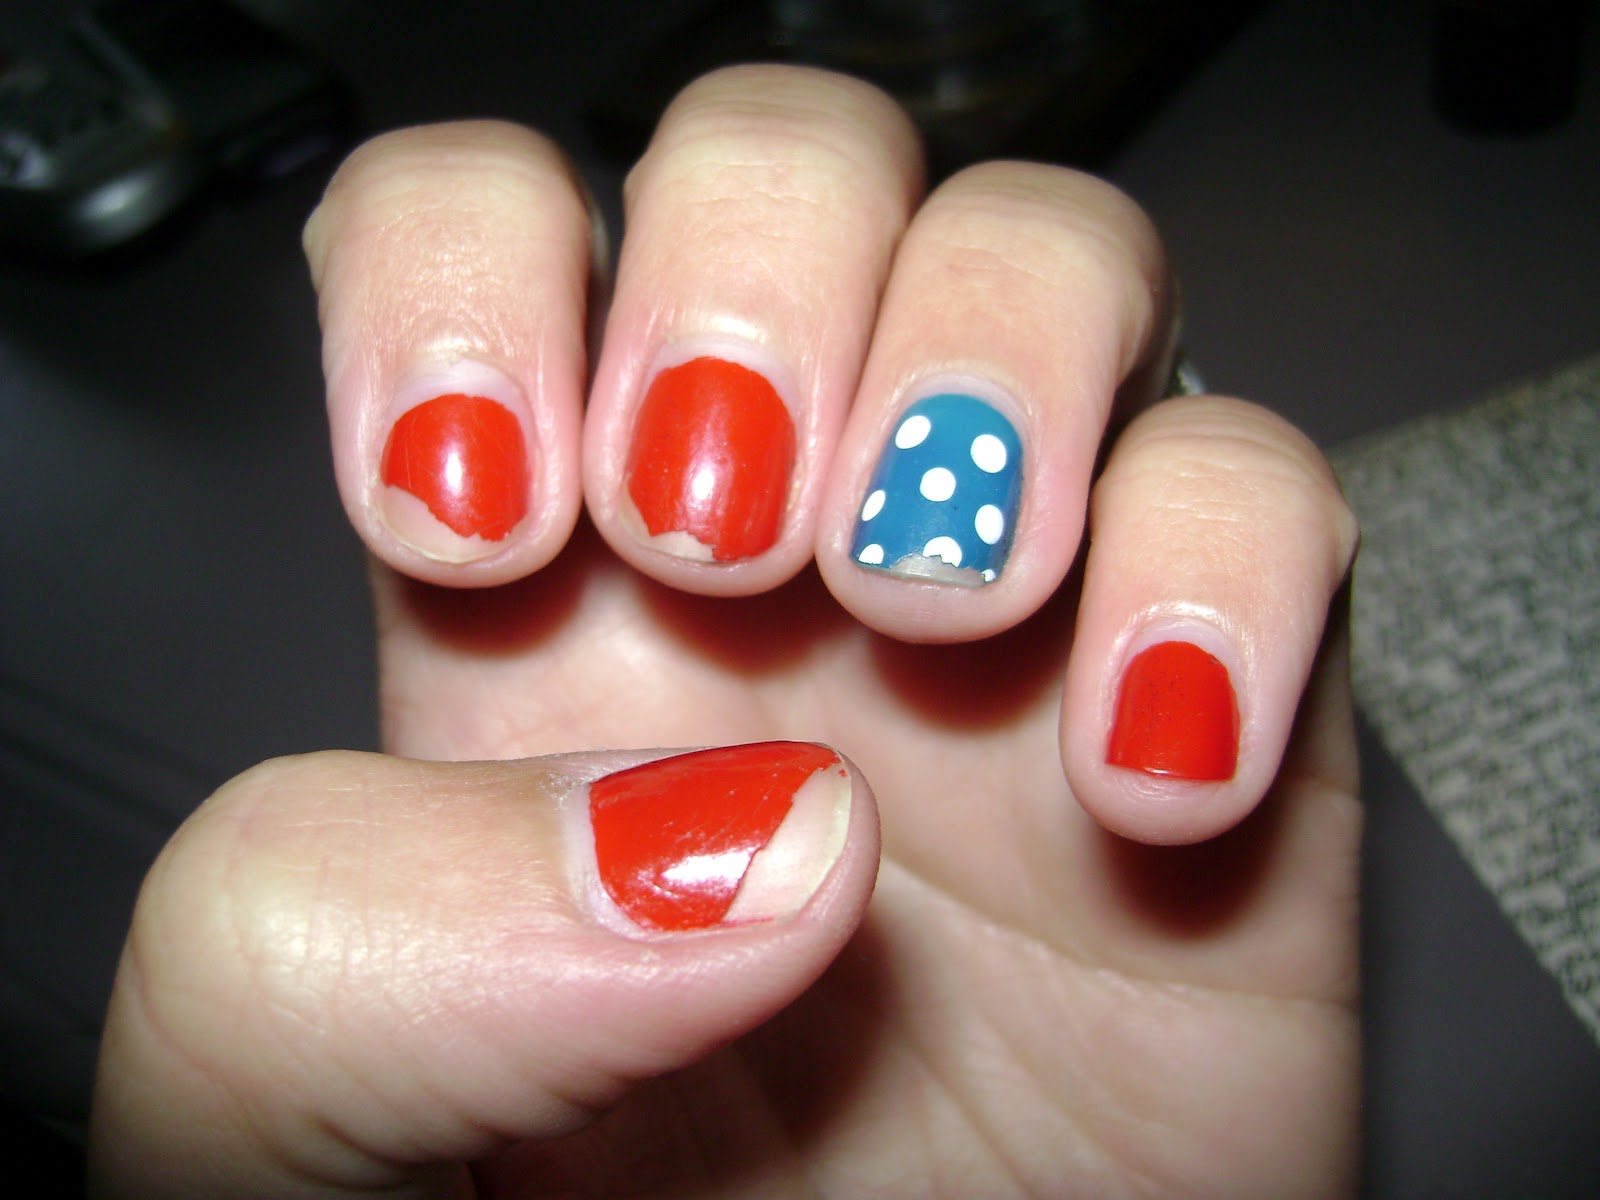 Buttons Birds & BS: Read my nails